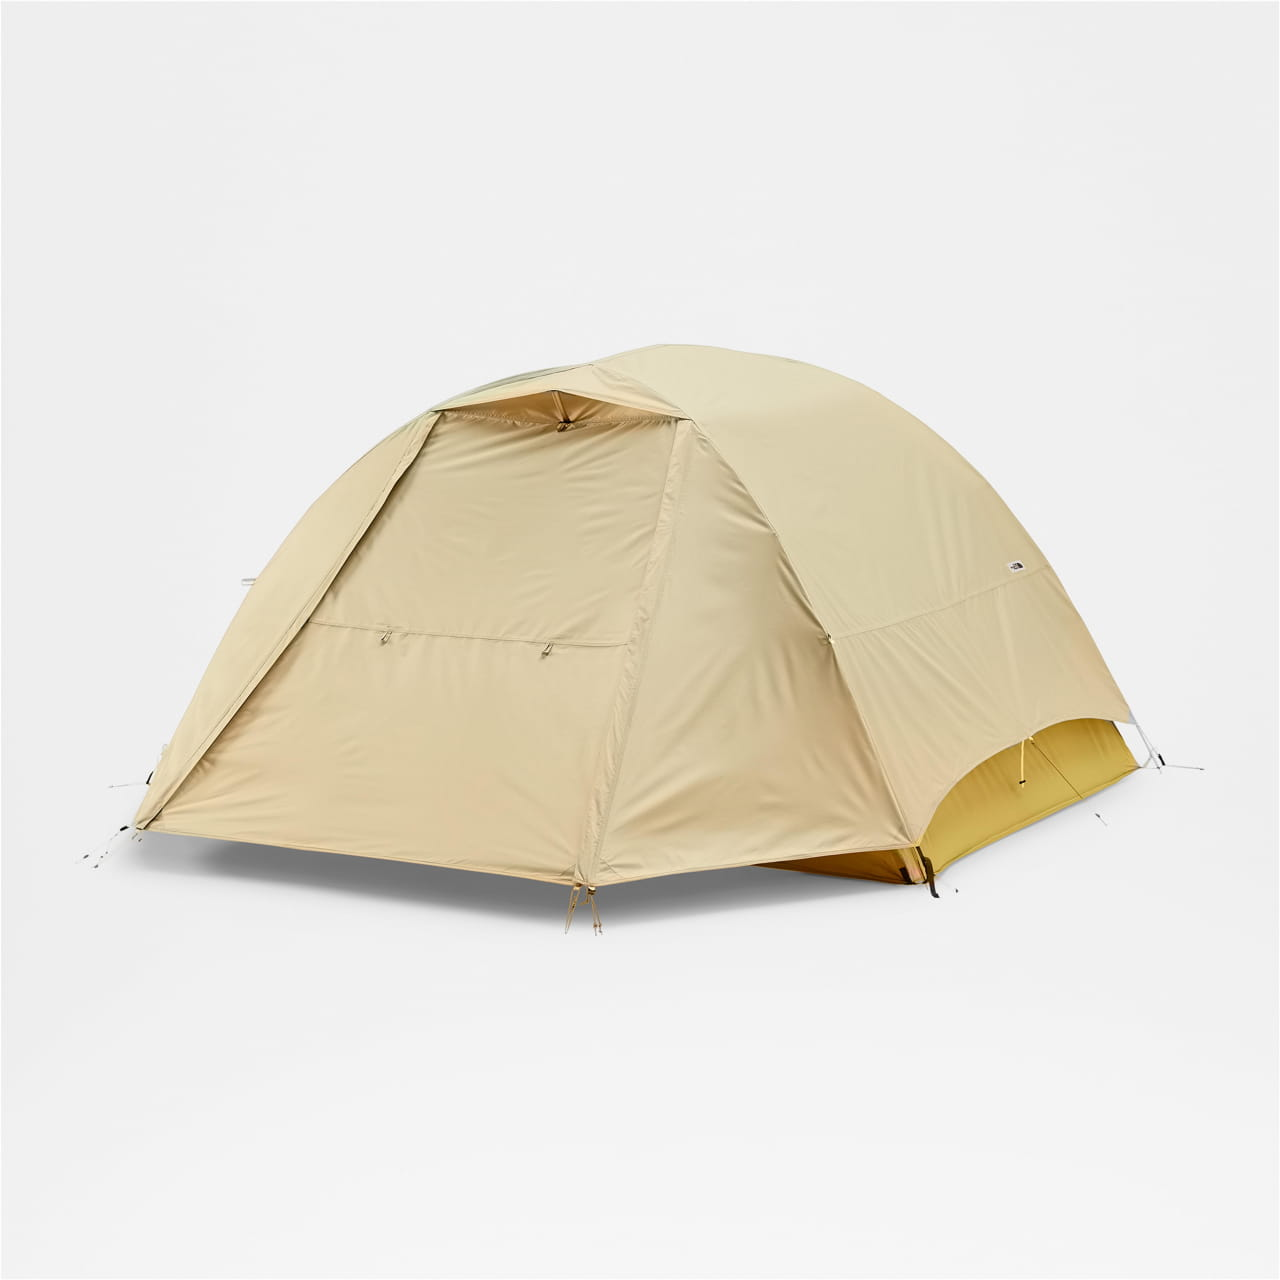 Stan pro 3 osoby The North Face Talus Eco 3 Person Tent